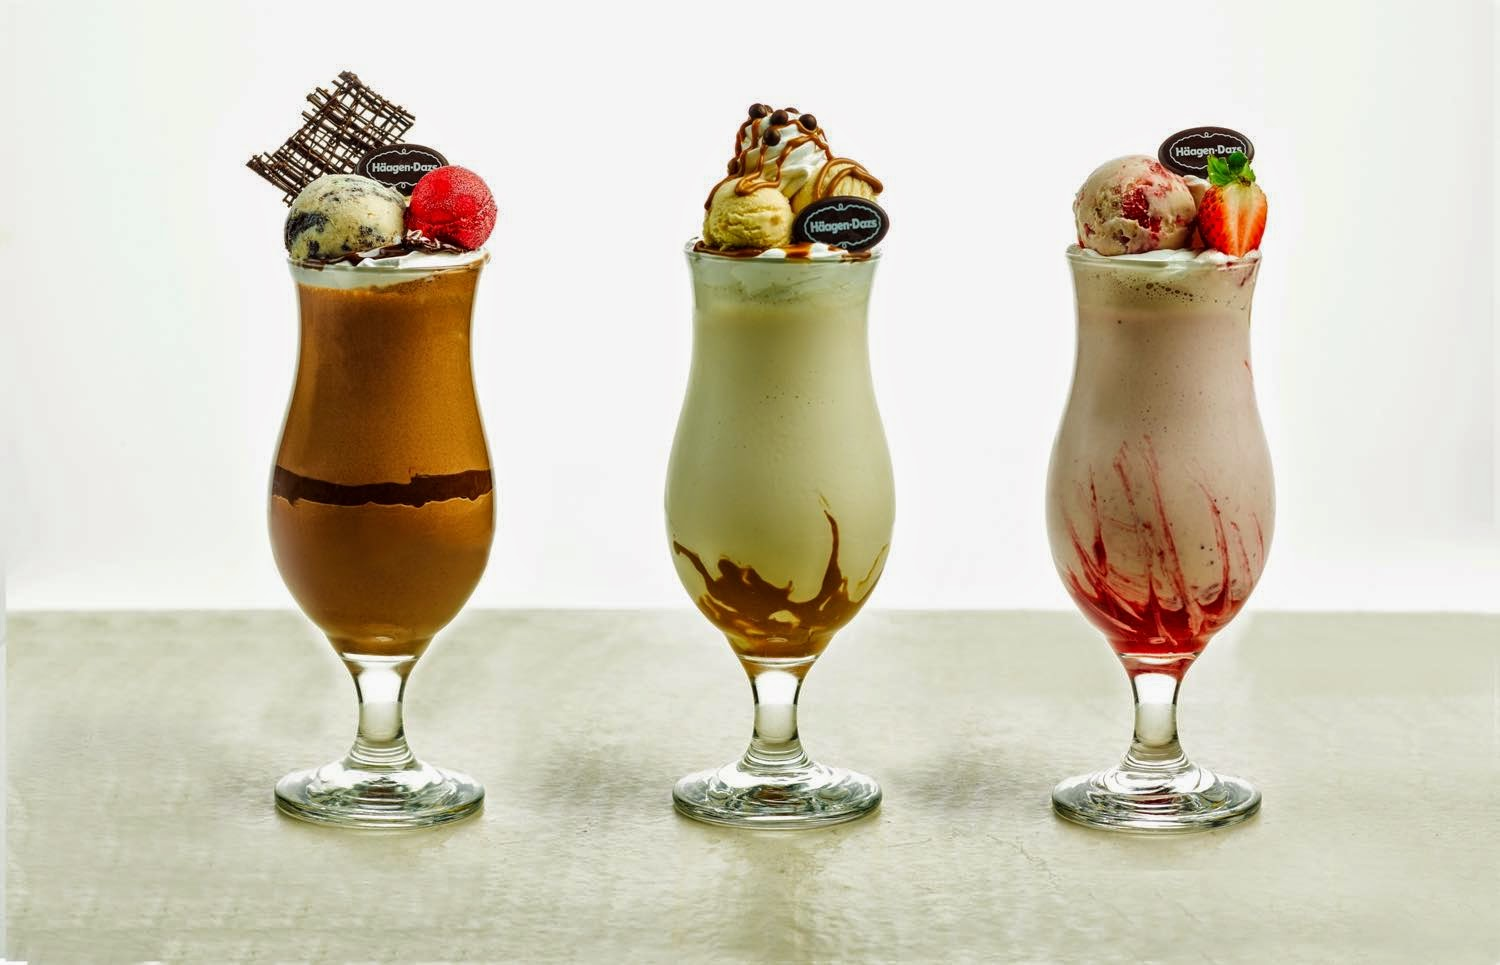 haagen-dazs-delicious-ice-cream-frappes